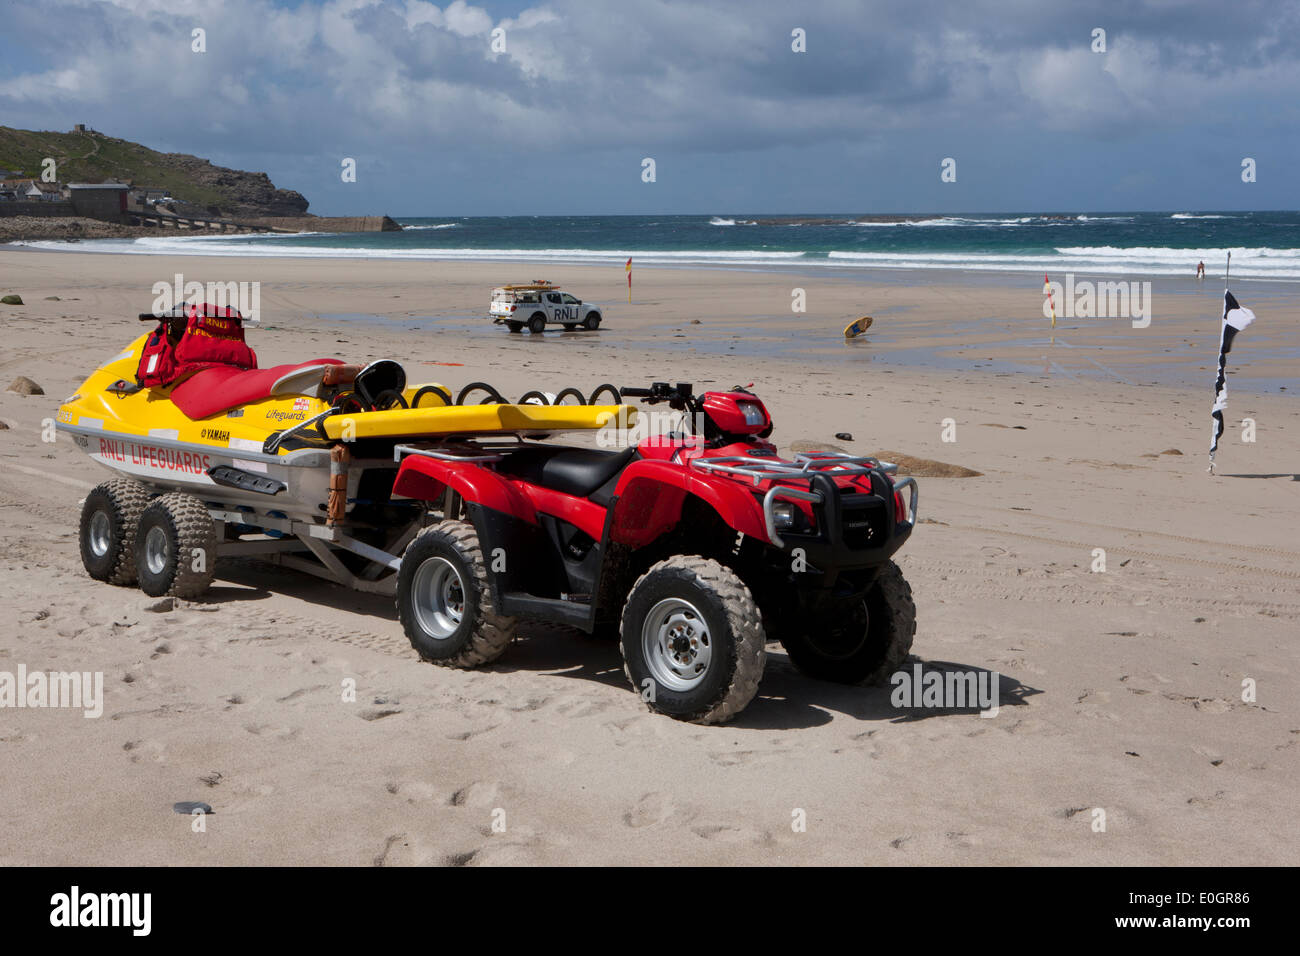 an rnli lifeguard 39 s quad bike and jet ski pwc rescue craft and a stock photo 69210966 alamy. Black Bedroom Furniture Sets. Home Design Ideas